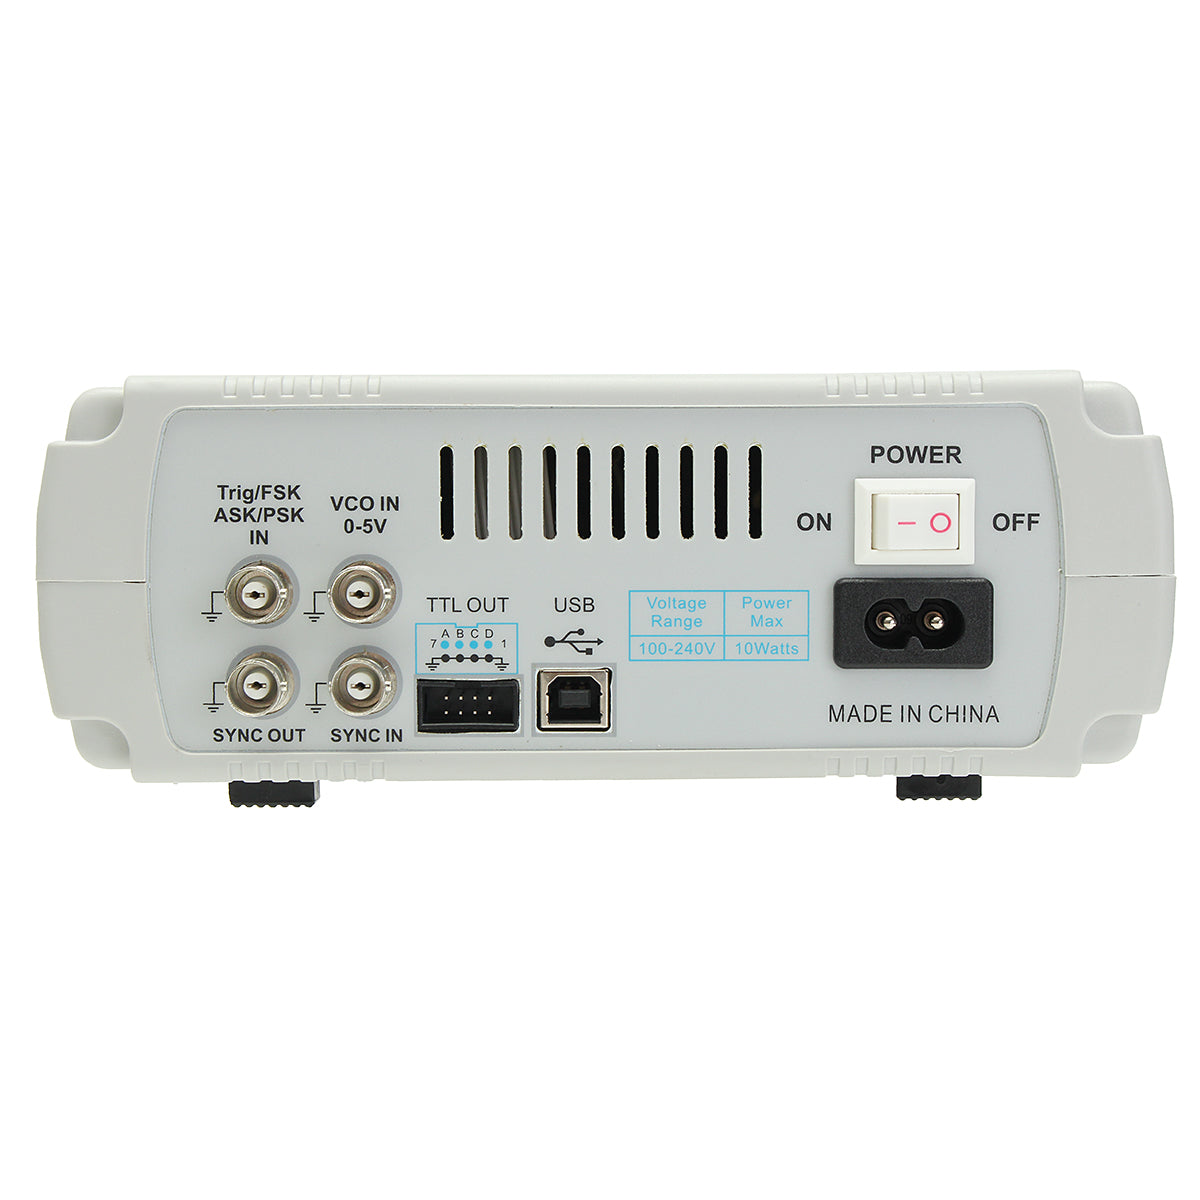 FY6600 Digital 12-60MHz Dual Channel DDS Function Arbitrary Waveform Signal Generator Frequency Meter